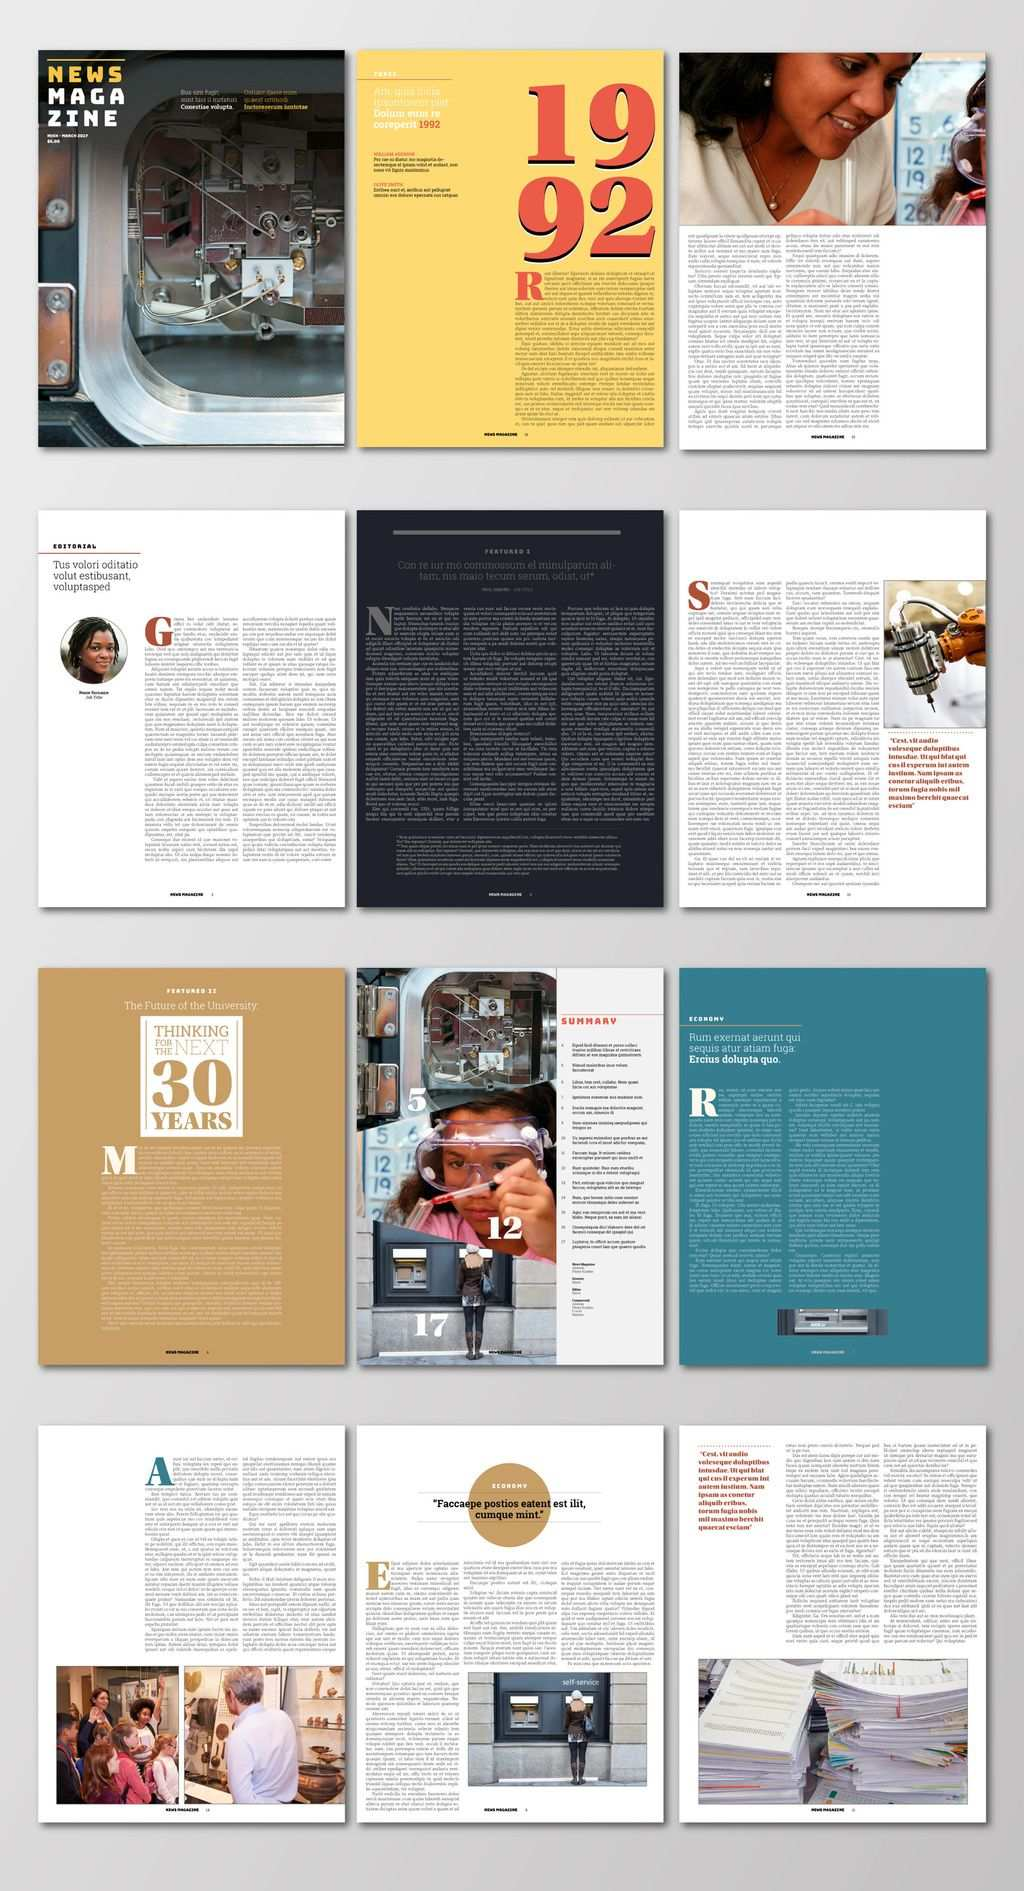 Free Artist Made Templates Now In Indesign Magazine Design